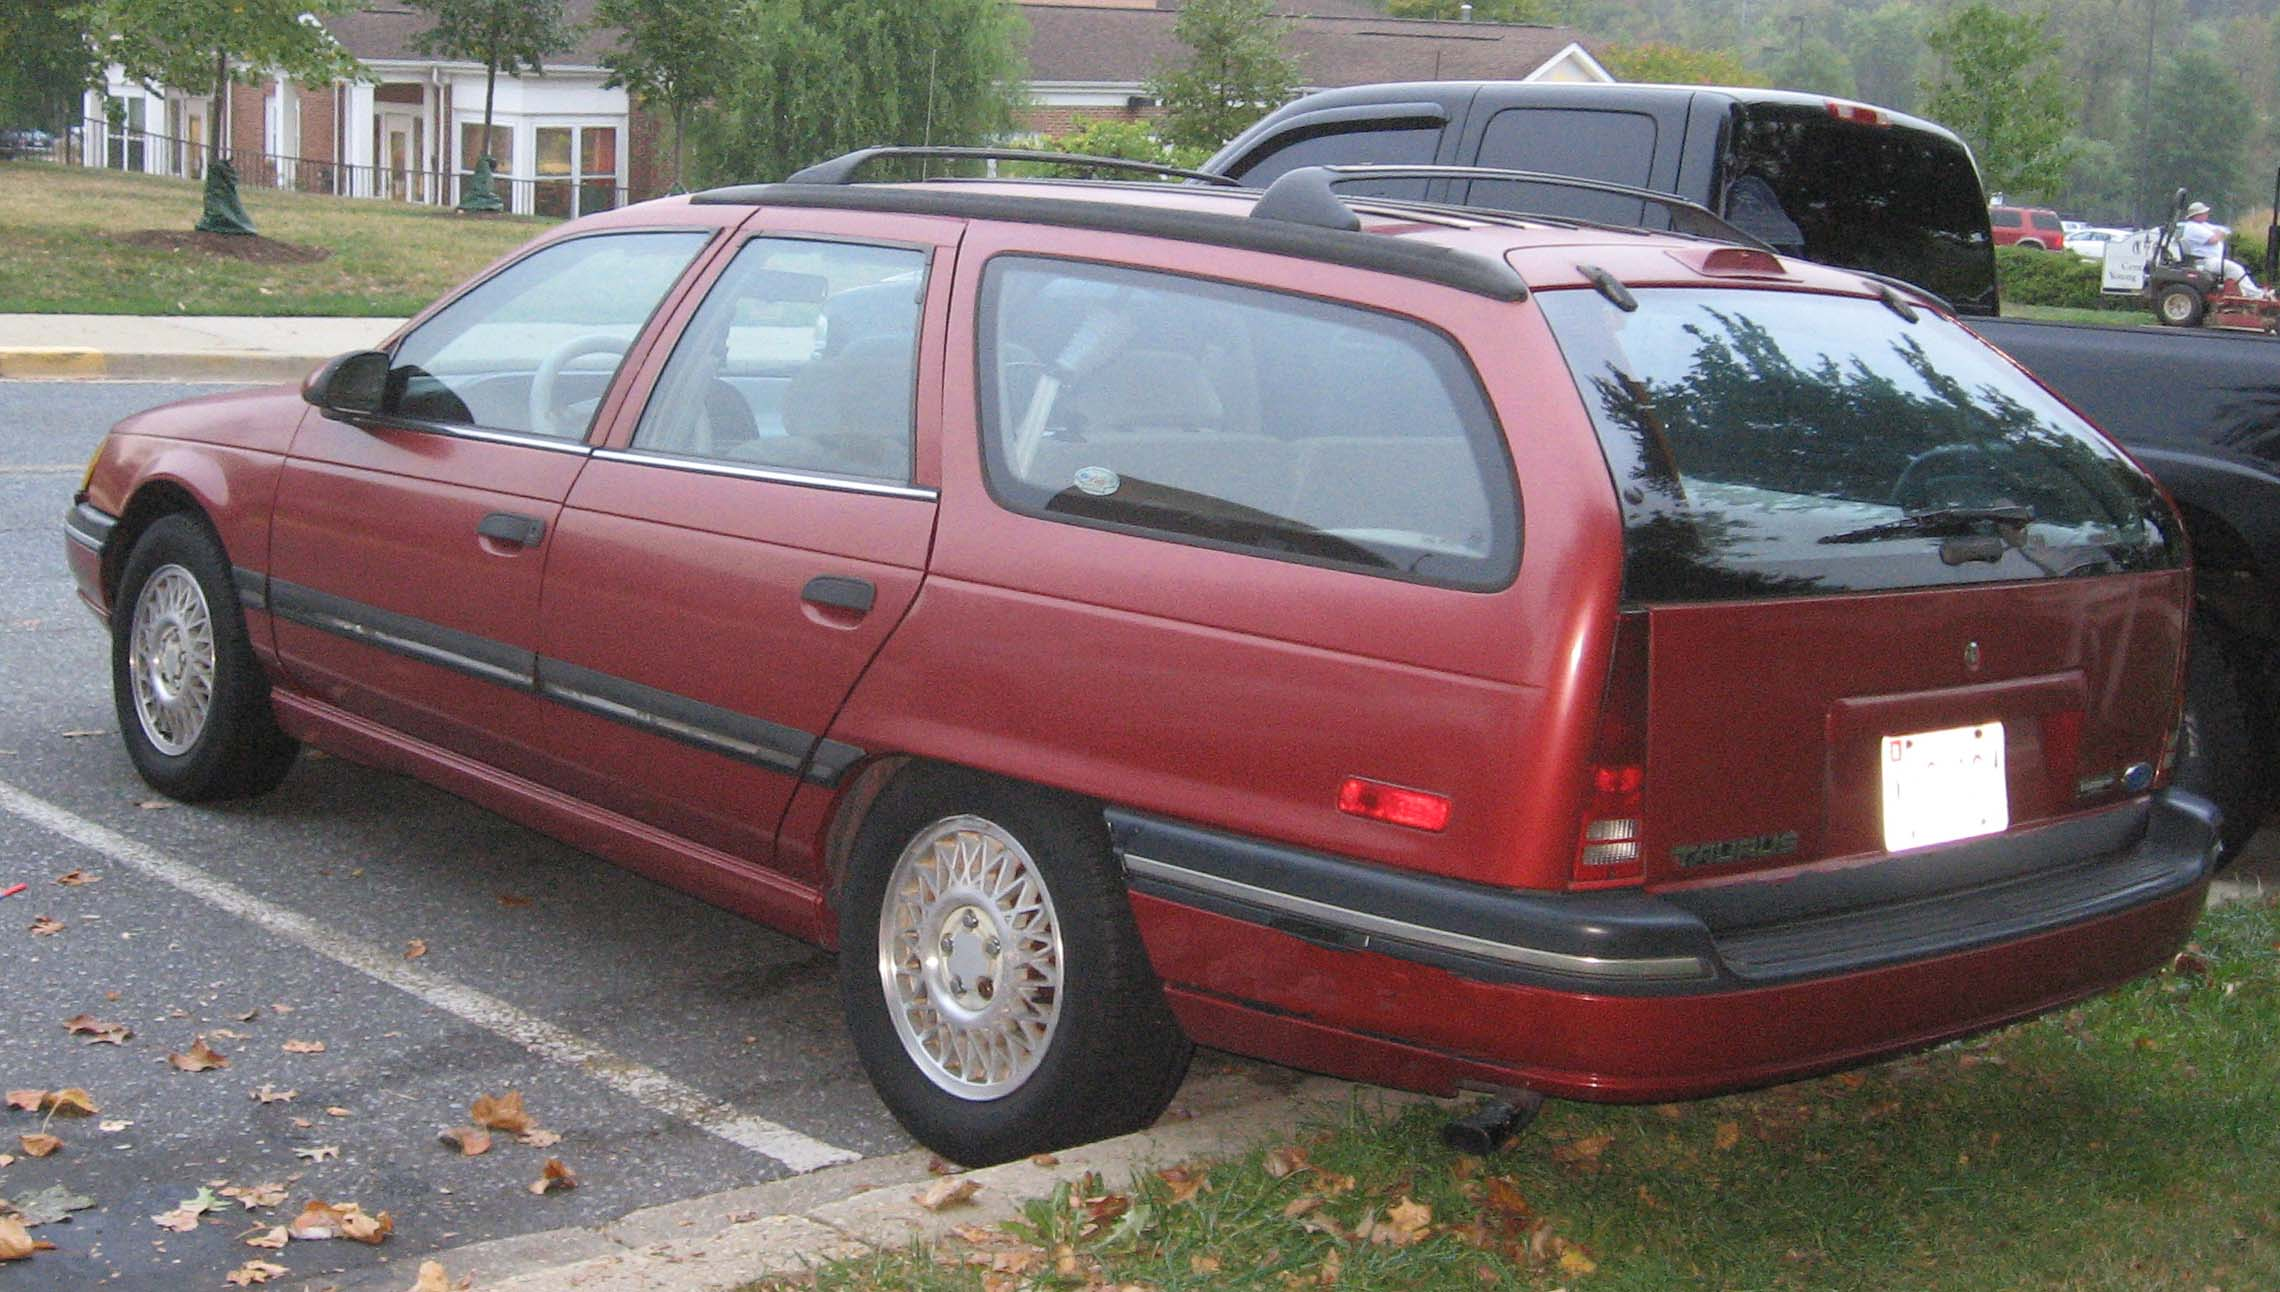 College Station Ford >> File:89-91 Ford Taurus wagon.jpg - Wikimedia Commons